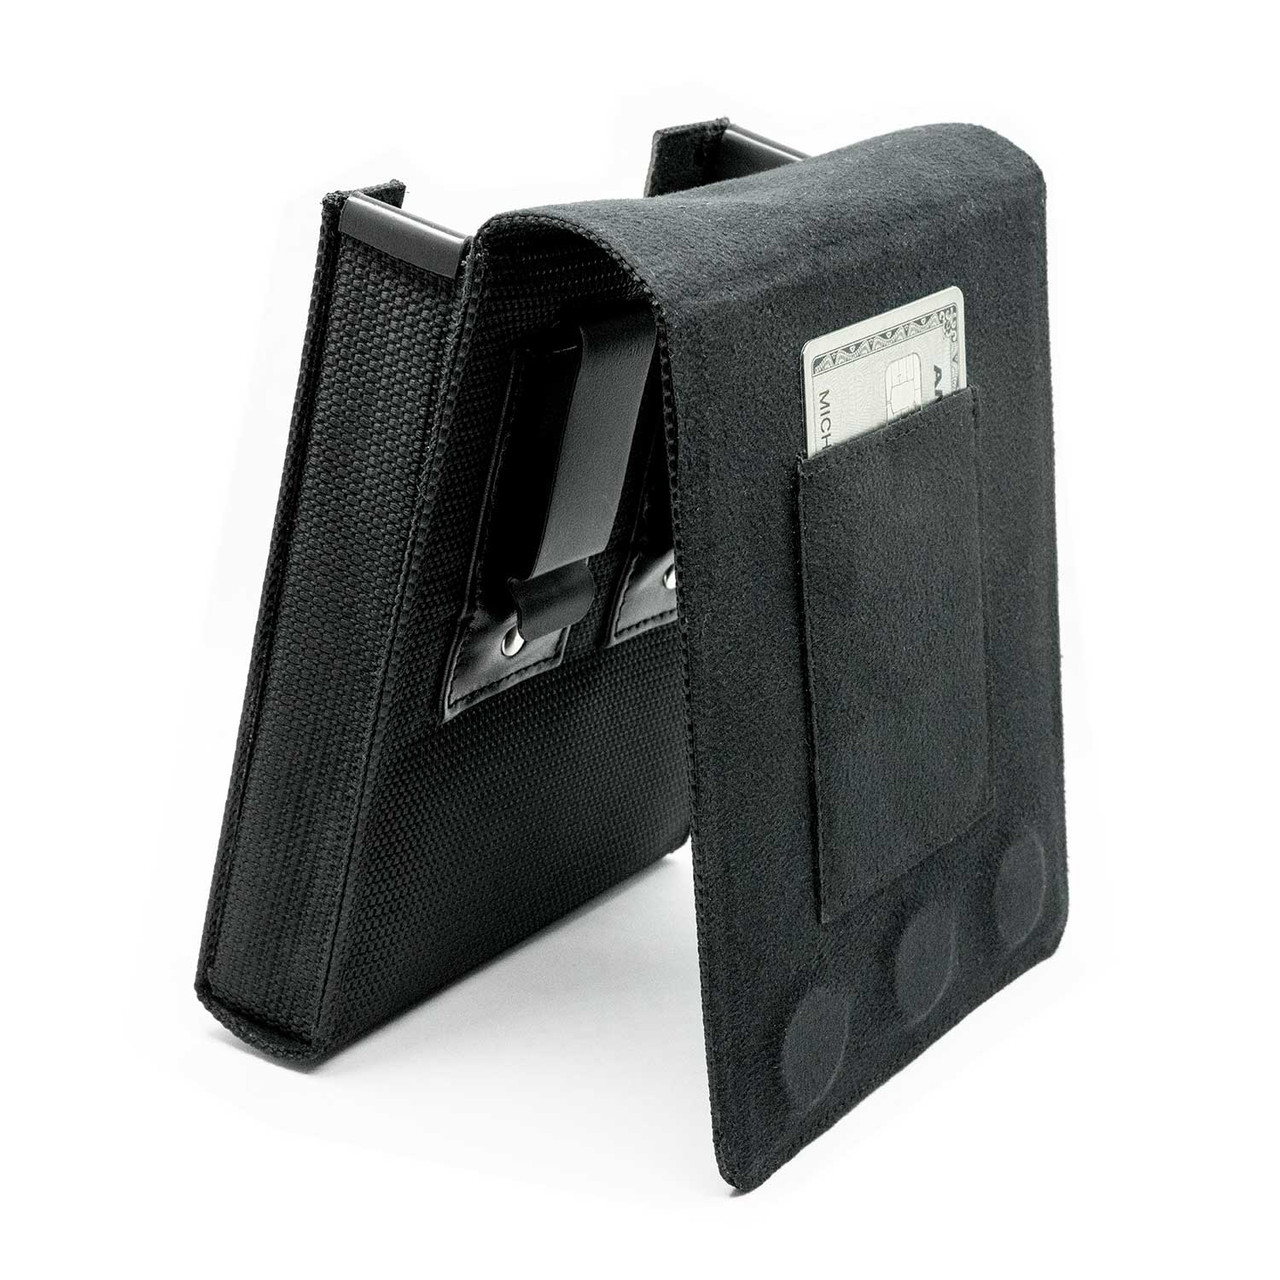 Kimber Evo Air Force Tactical Patch Holster